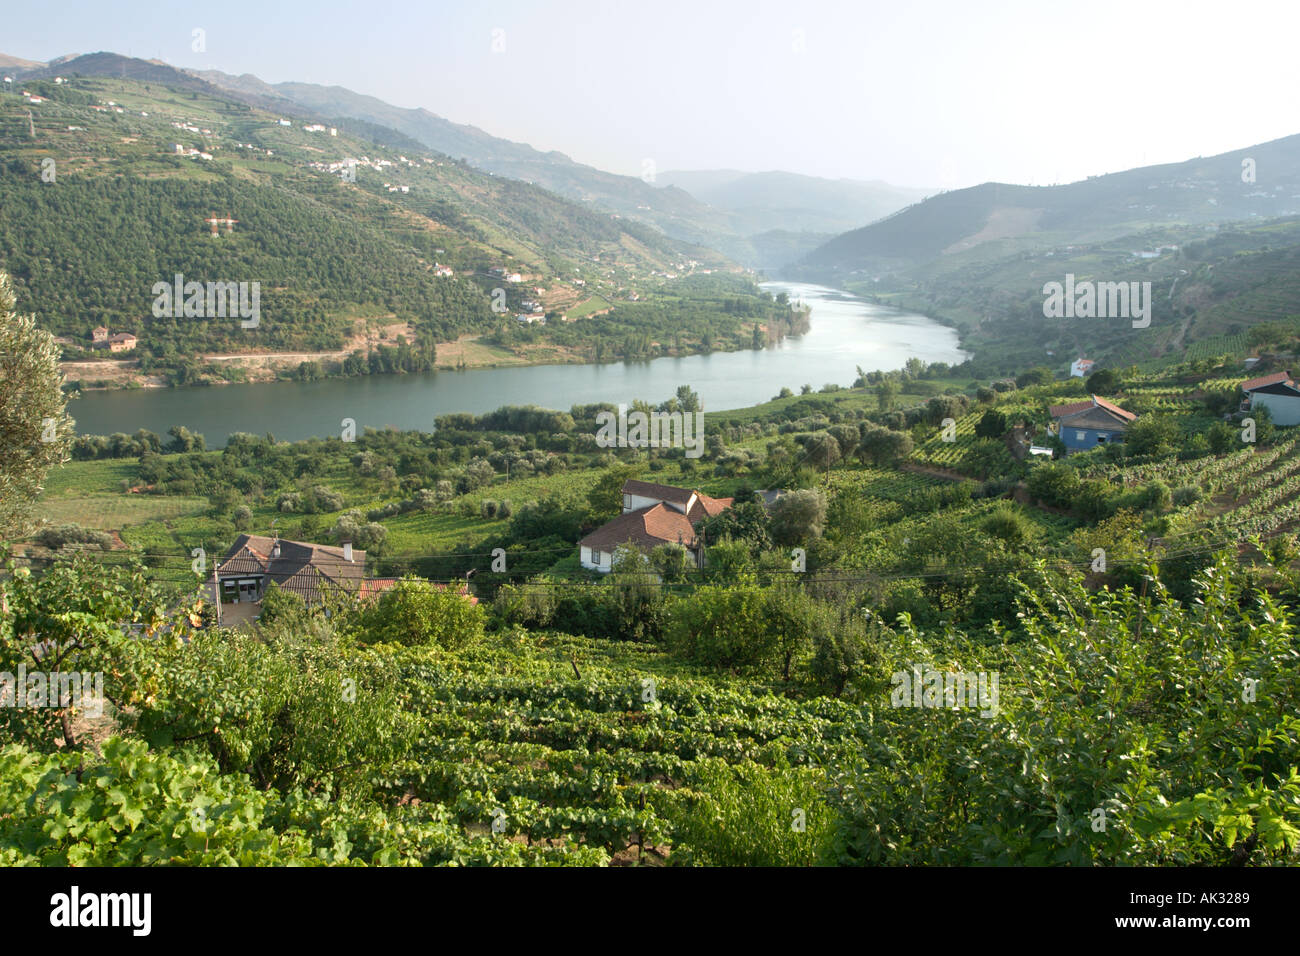 Vineyards in the Douro Valley, Portugal - Stock Image